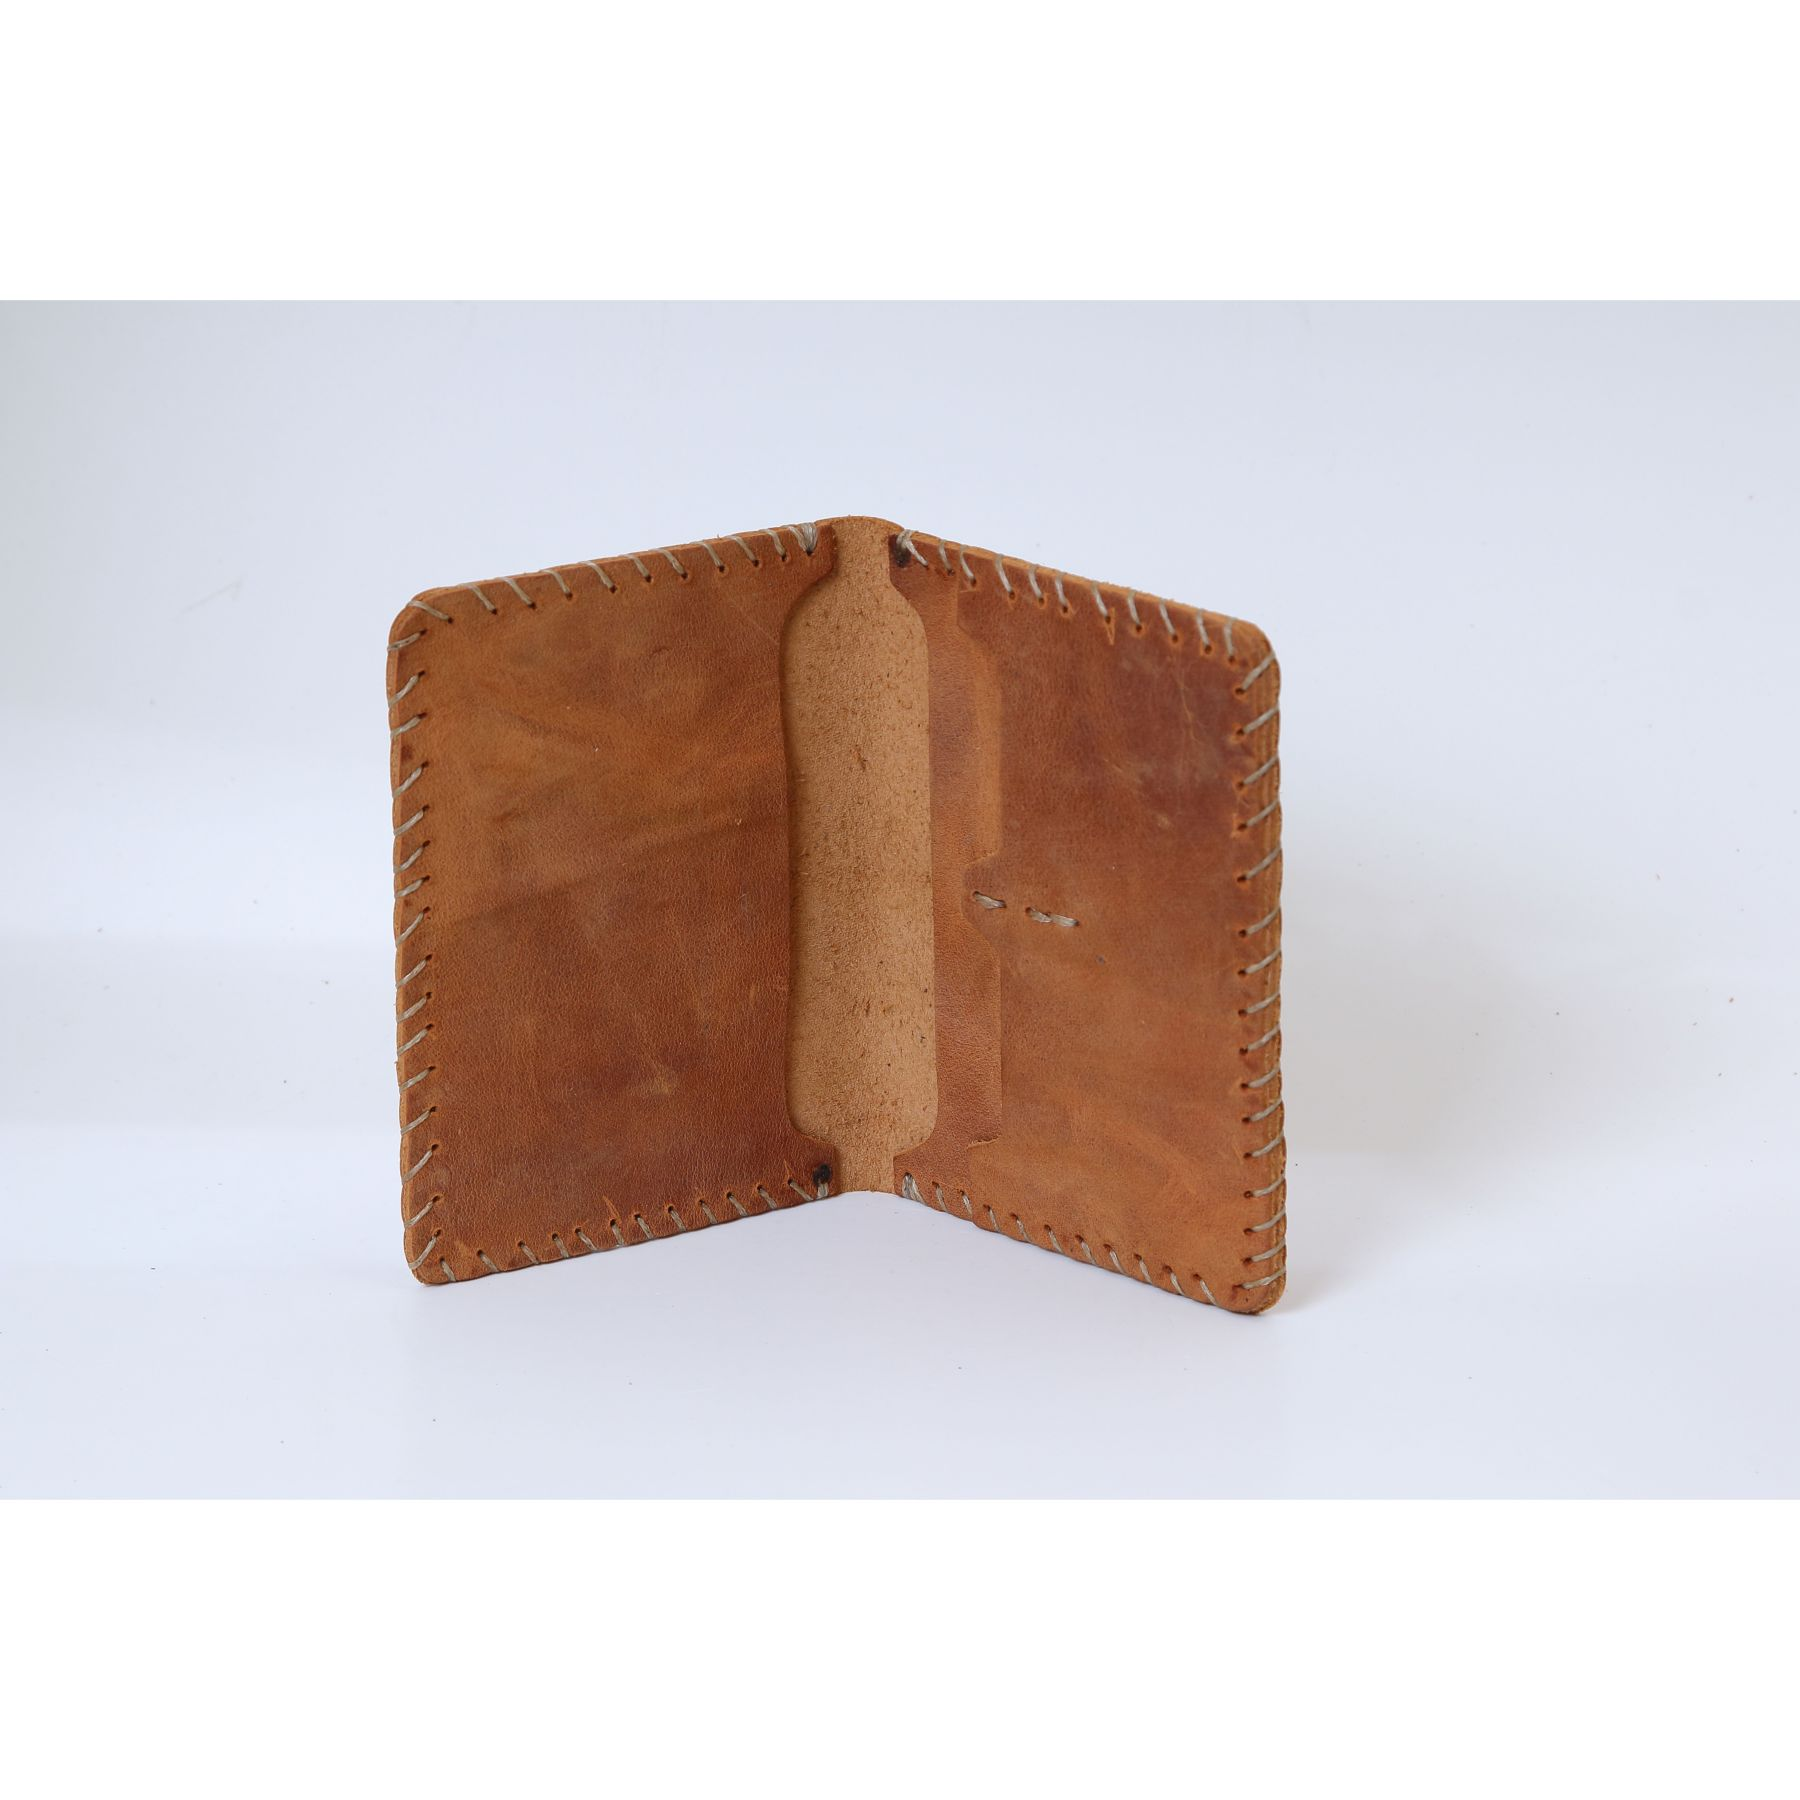 Men's credit card holder wallet bank card Business id card holder leather card organizer Genuine cow leather model 5